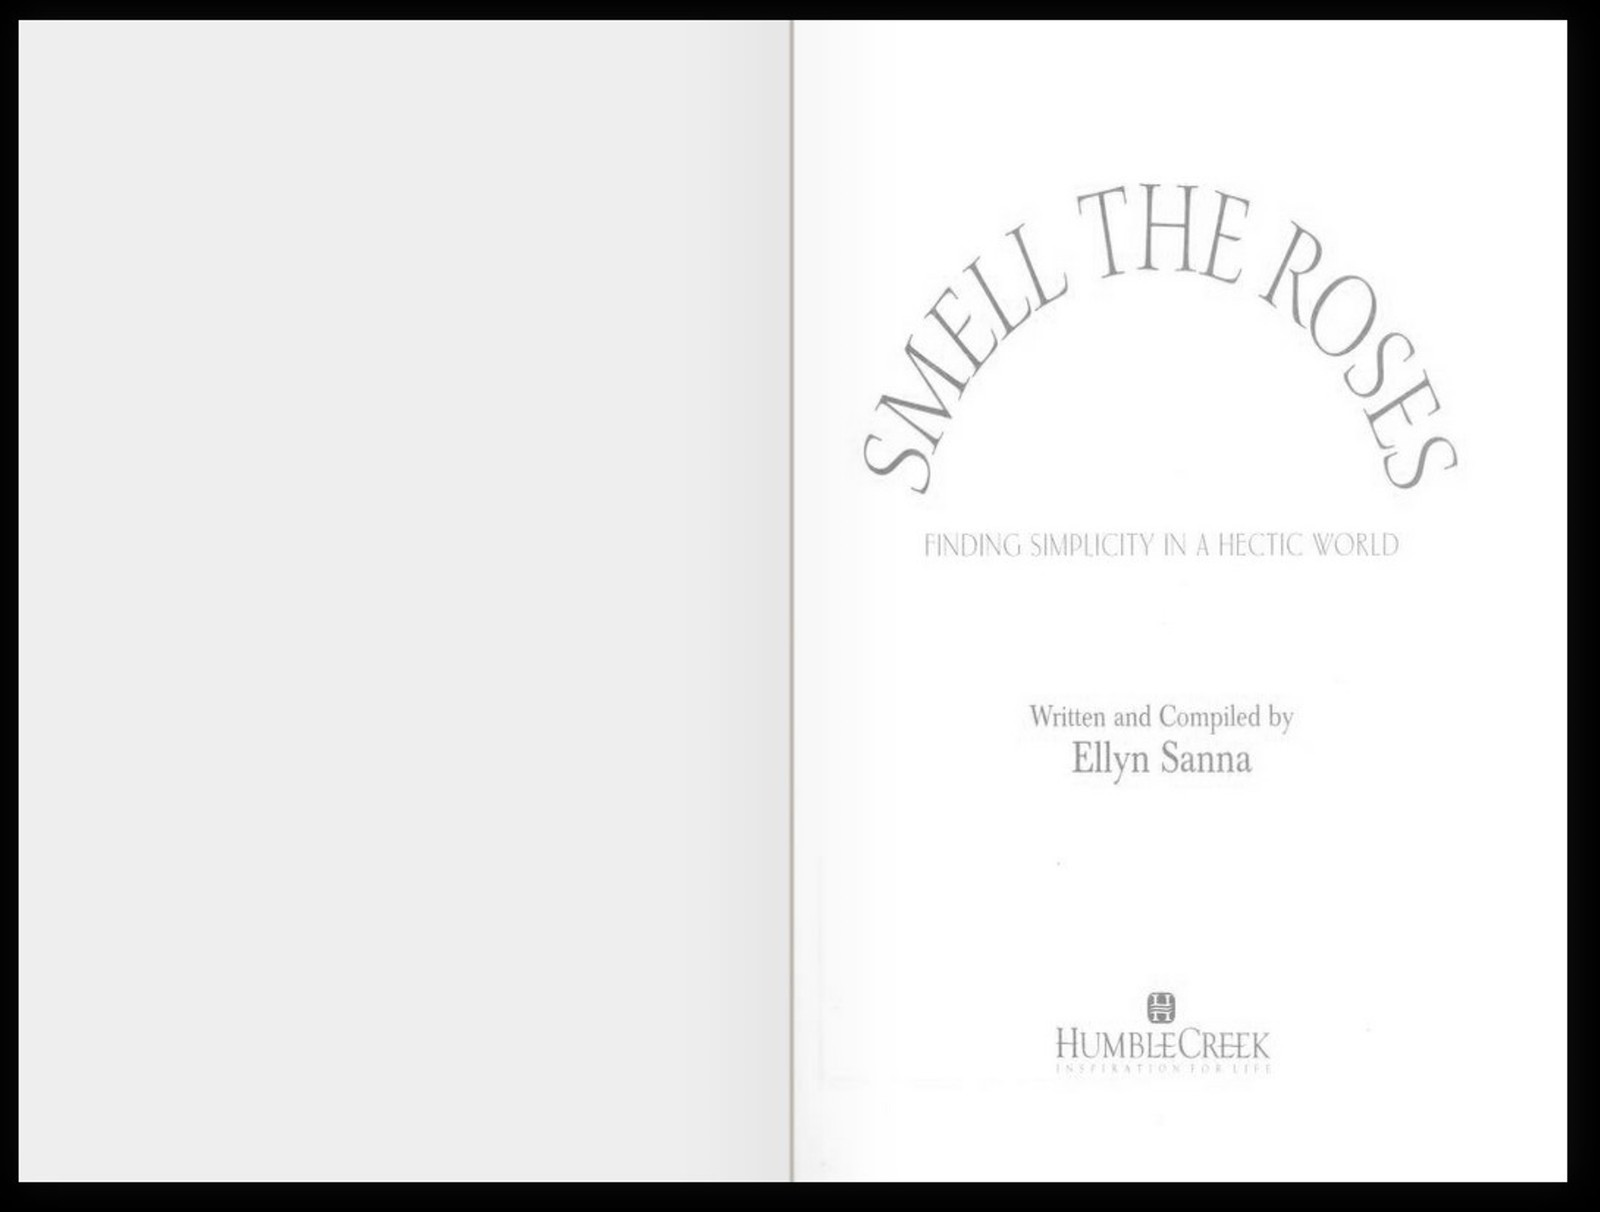 SMELL THE ROSES Finding Simplicity in a Hectic World HARDCOVER BOOK